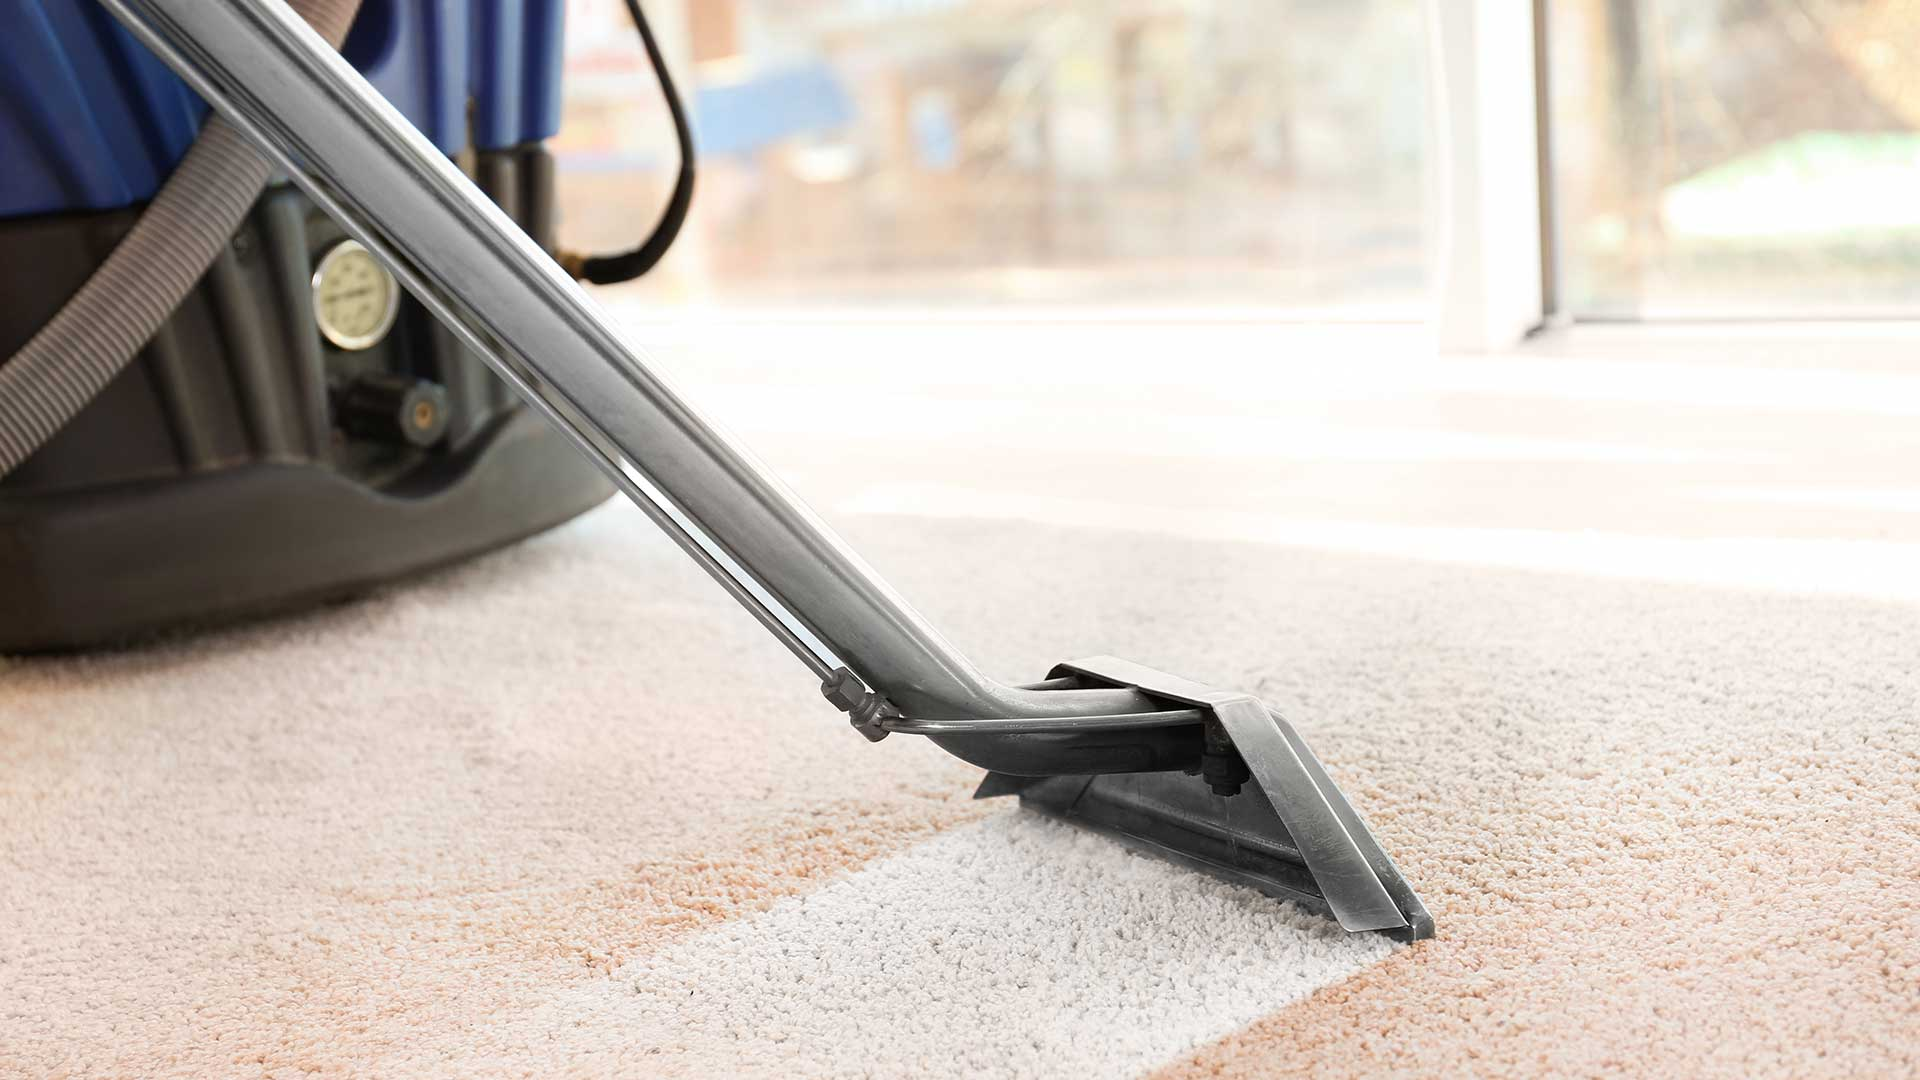 Carpet Cleaning Team Clean Supreme Cleaning Service